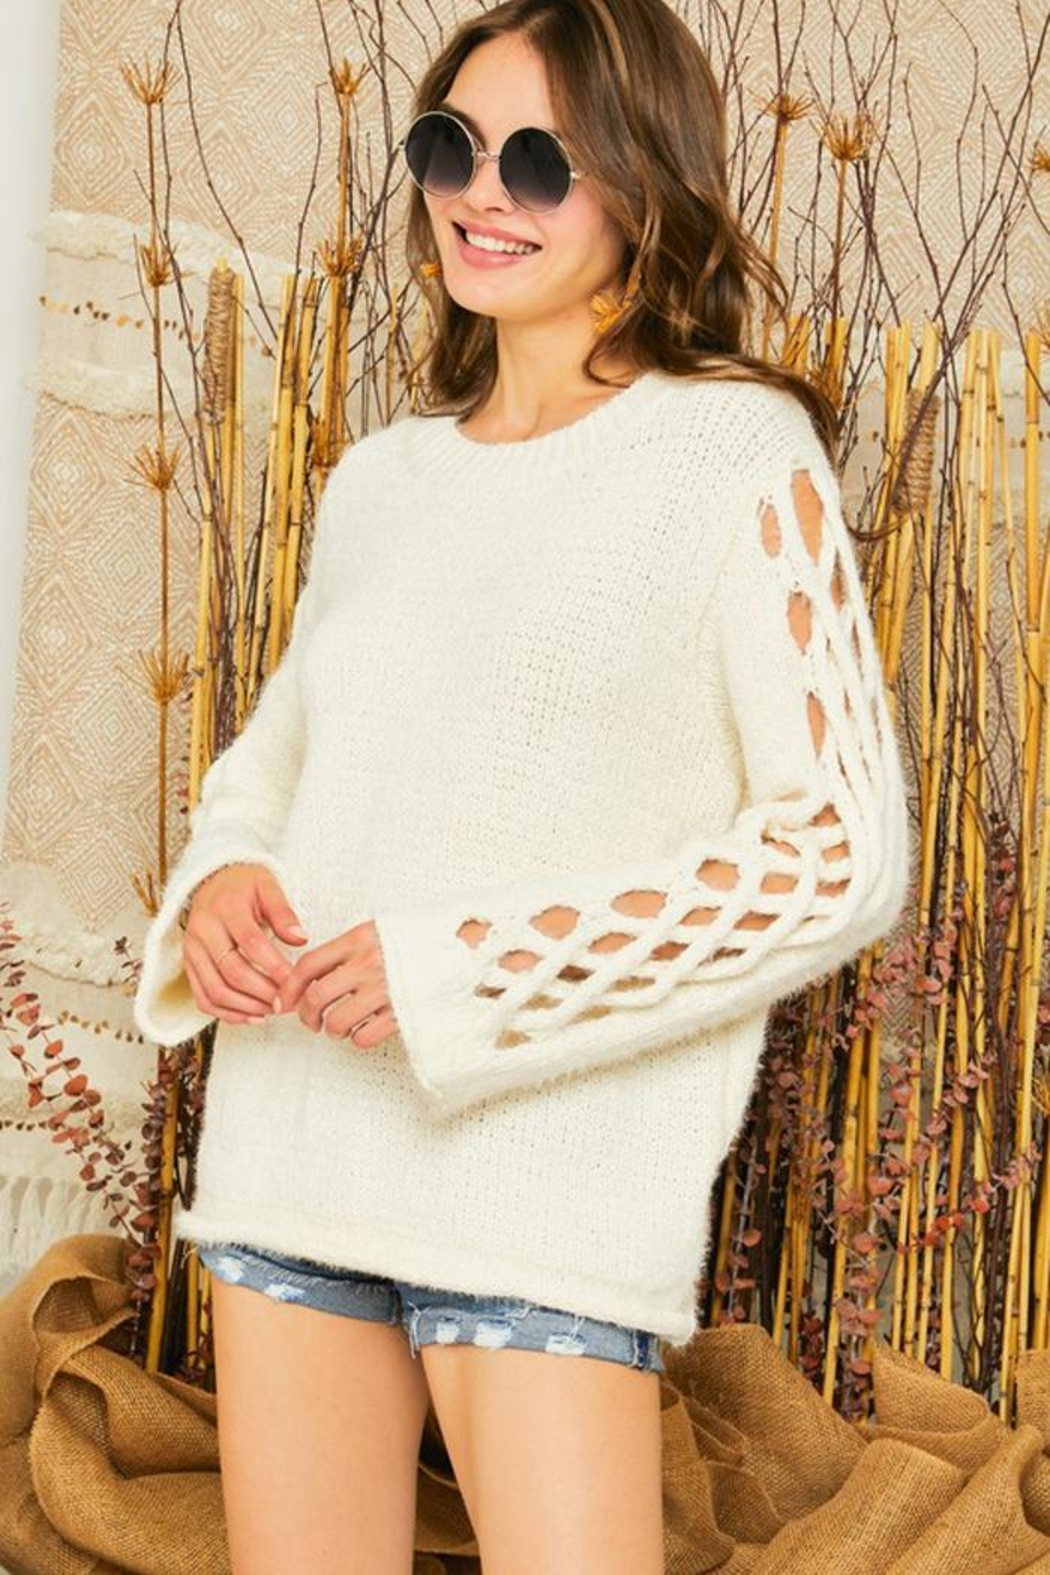 Adora Braided Sleeves Pullover Crew Neck Sweater Knit Jumper - Main Image